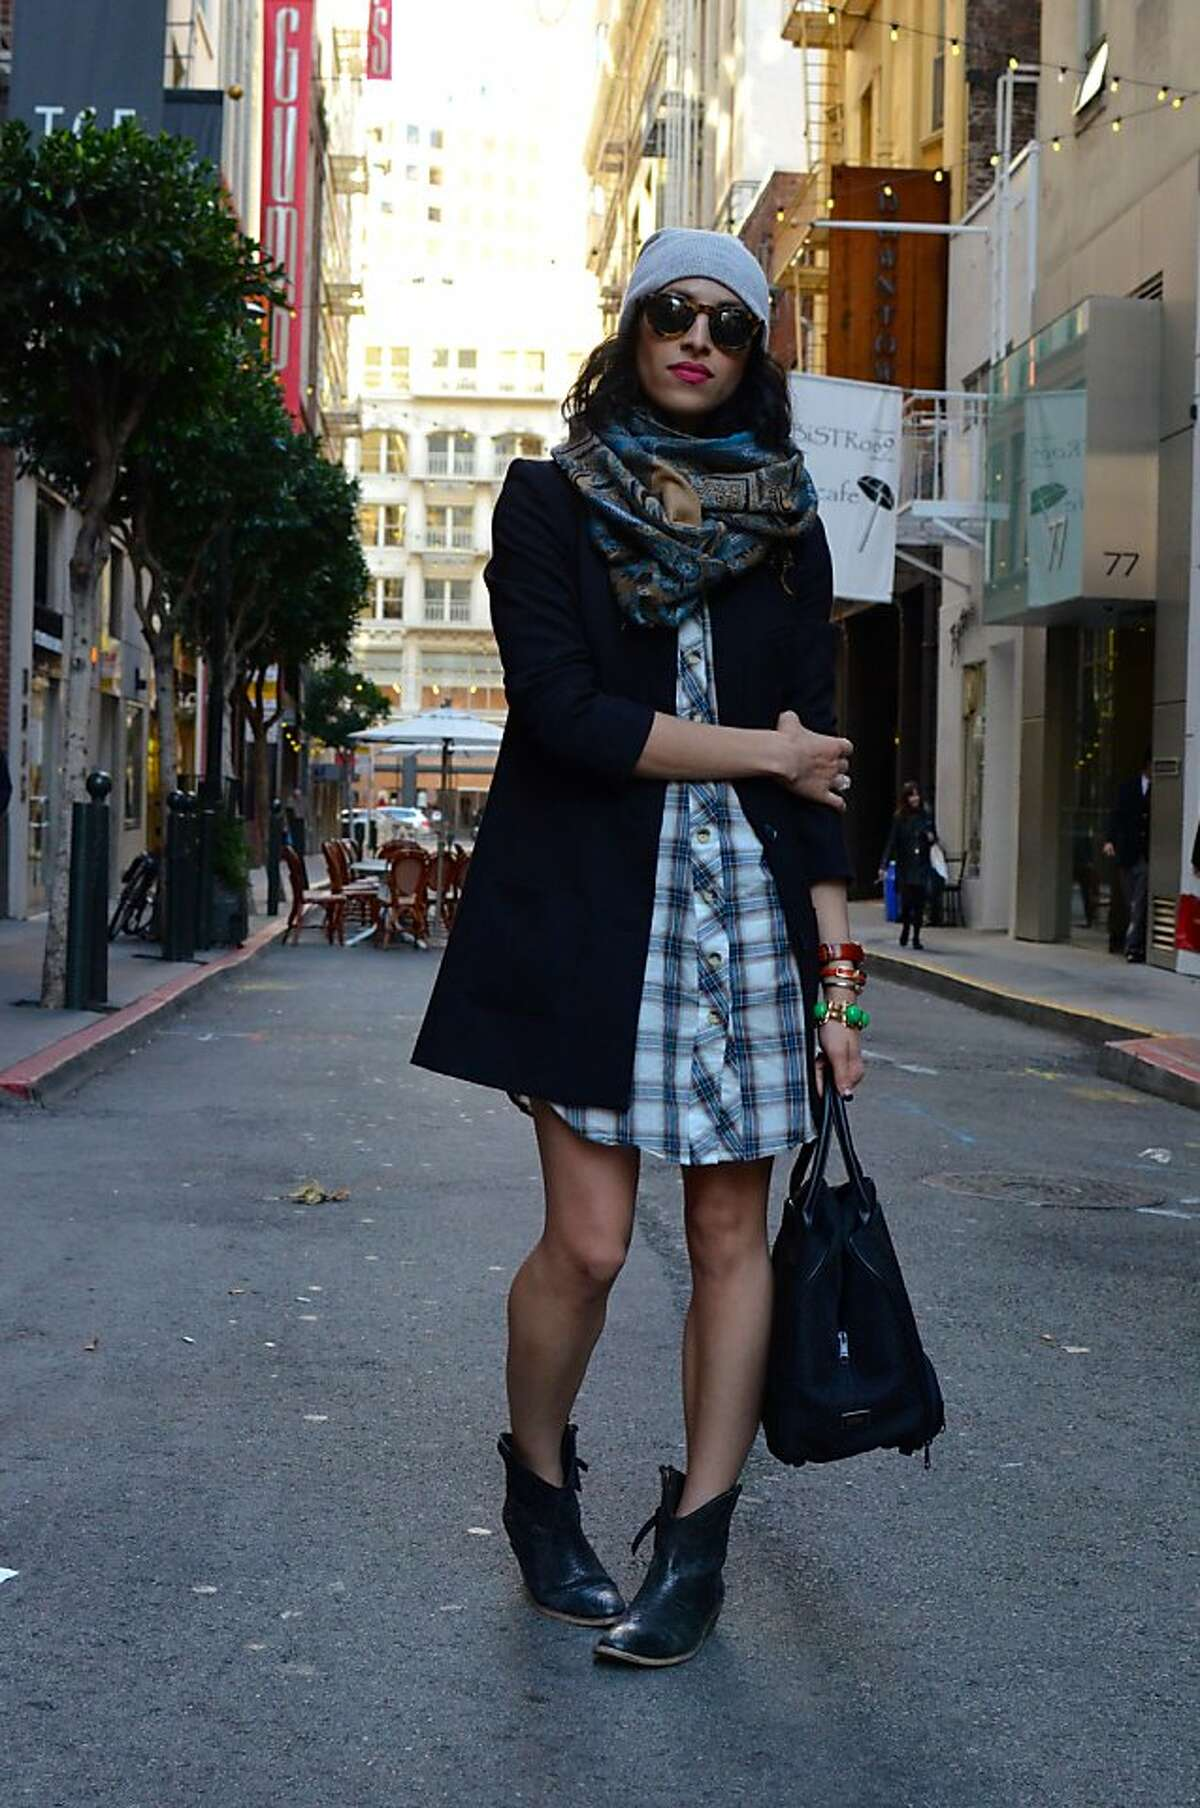 San Francisco has more fashion bloggers per capitan than New York or Los Angeles. Here are some of the more prominent ones. Pictured is Carlina Harris of Allergic to Vanilla